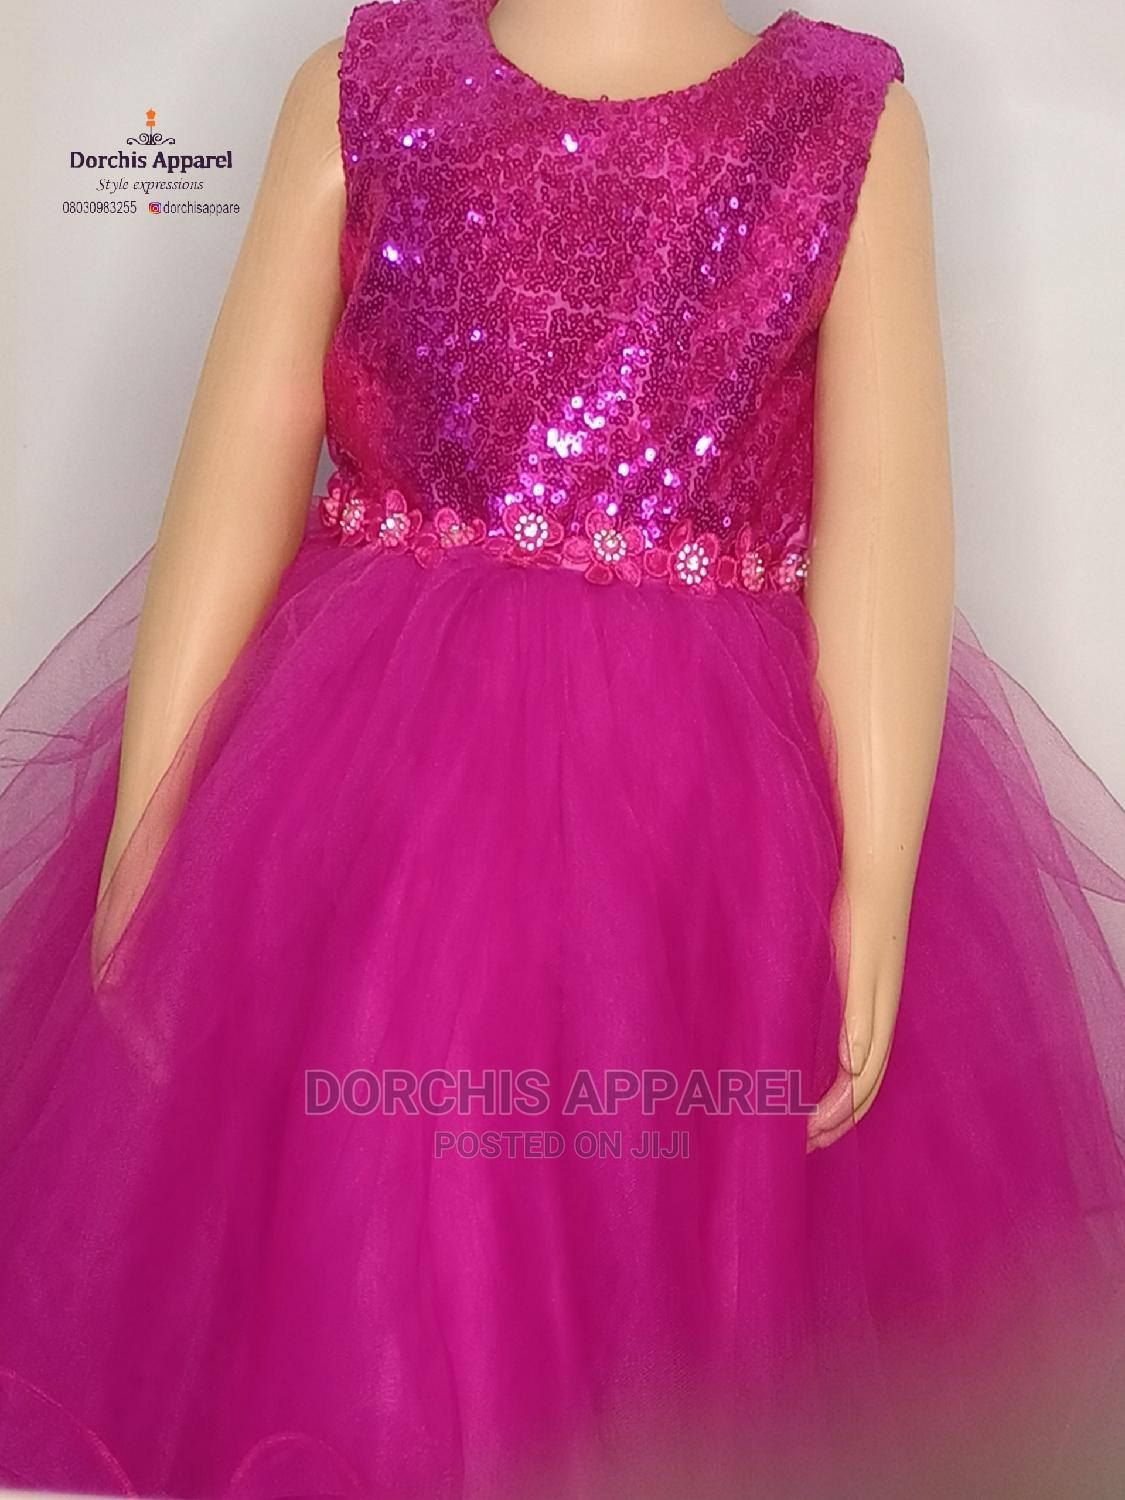 Dorchis Baby Girl Dress | Children's Clothing for sale in Surulere, Lagos State, Nigeria